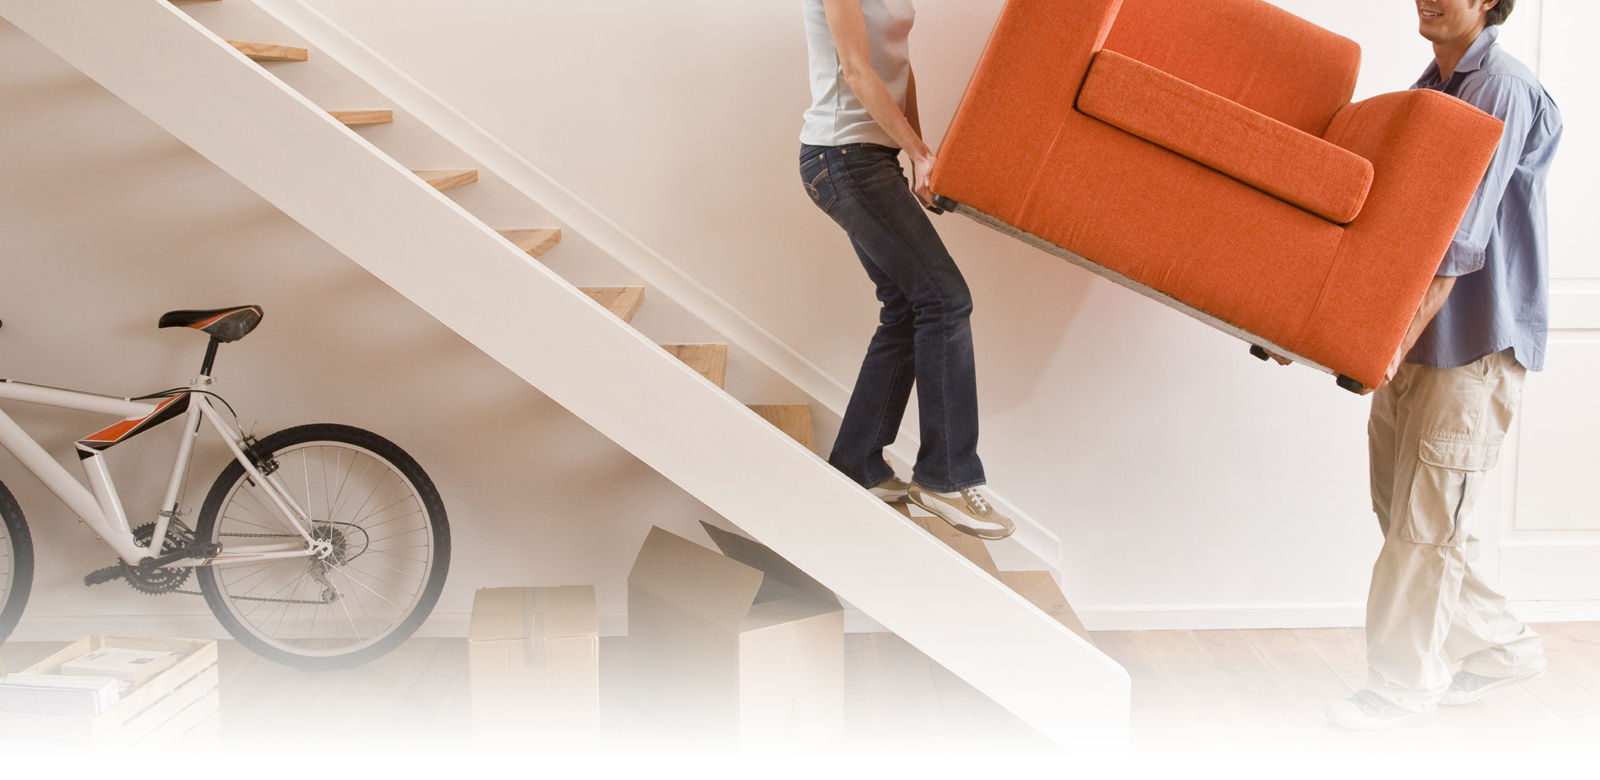 Discovering the Right Moving Services Company